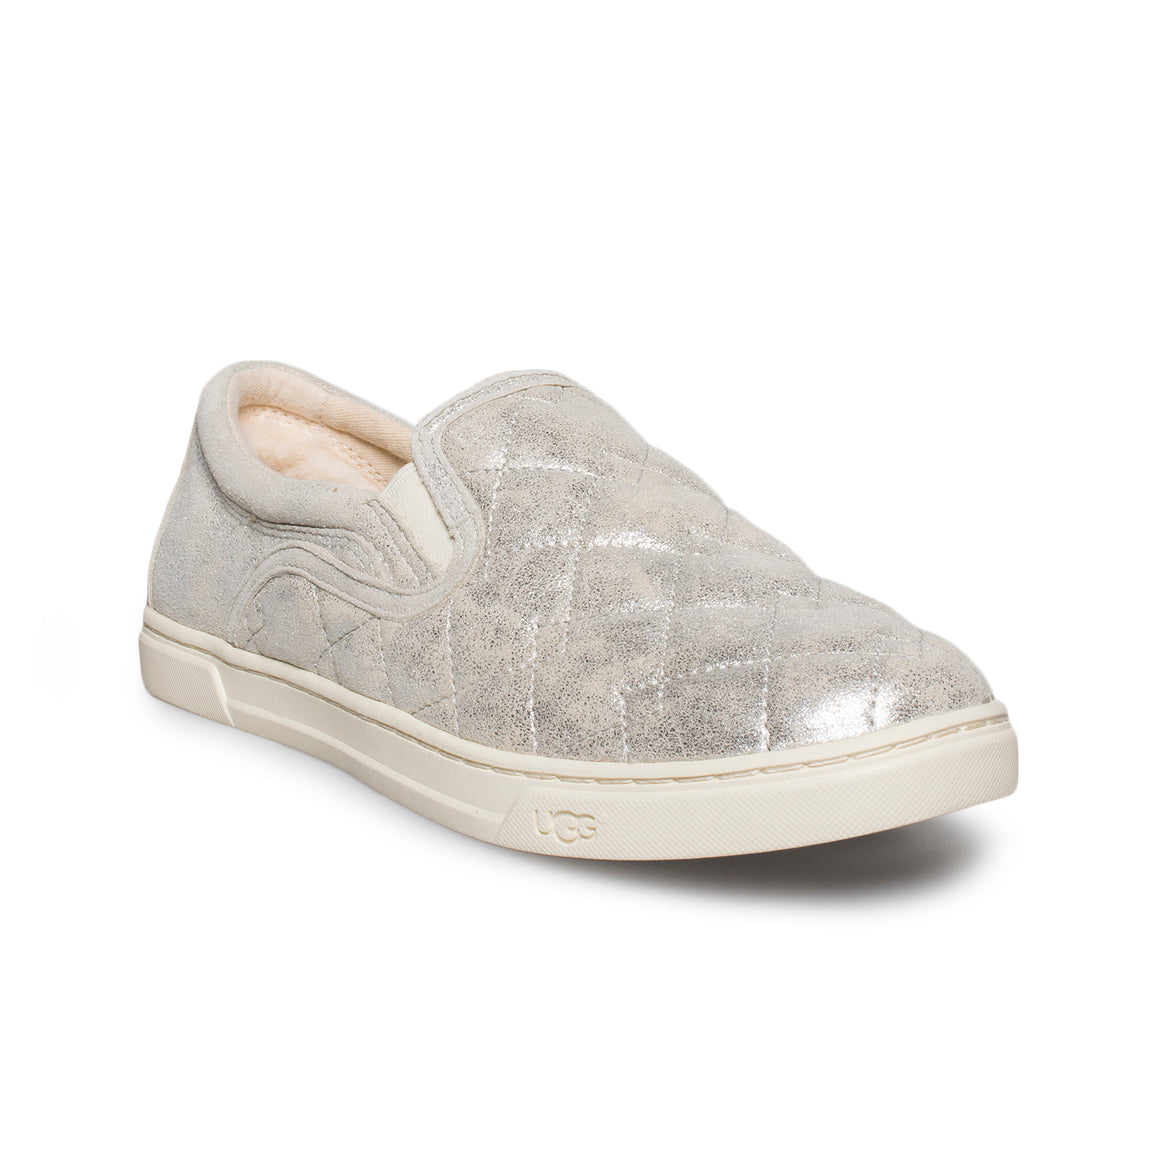 UGG Fierce Deco Quilt Stardust Silver Shoes